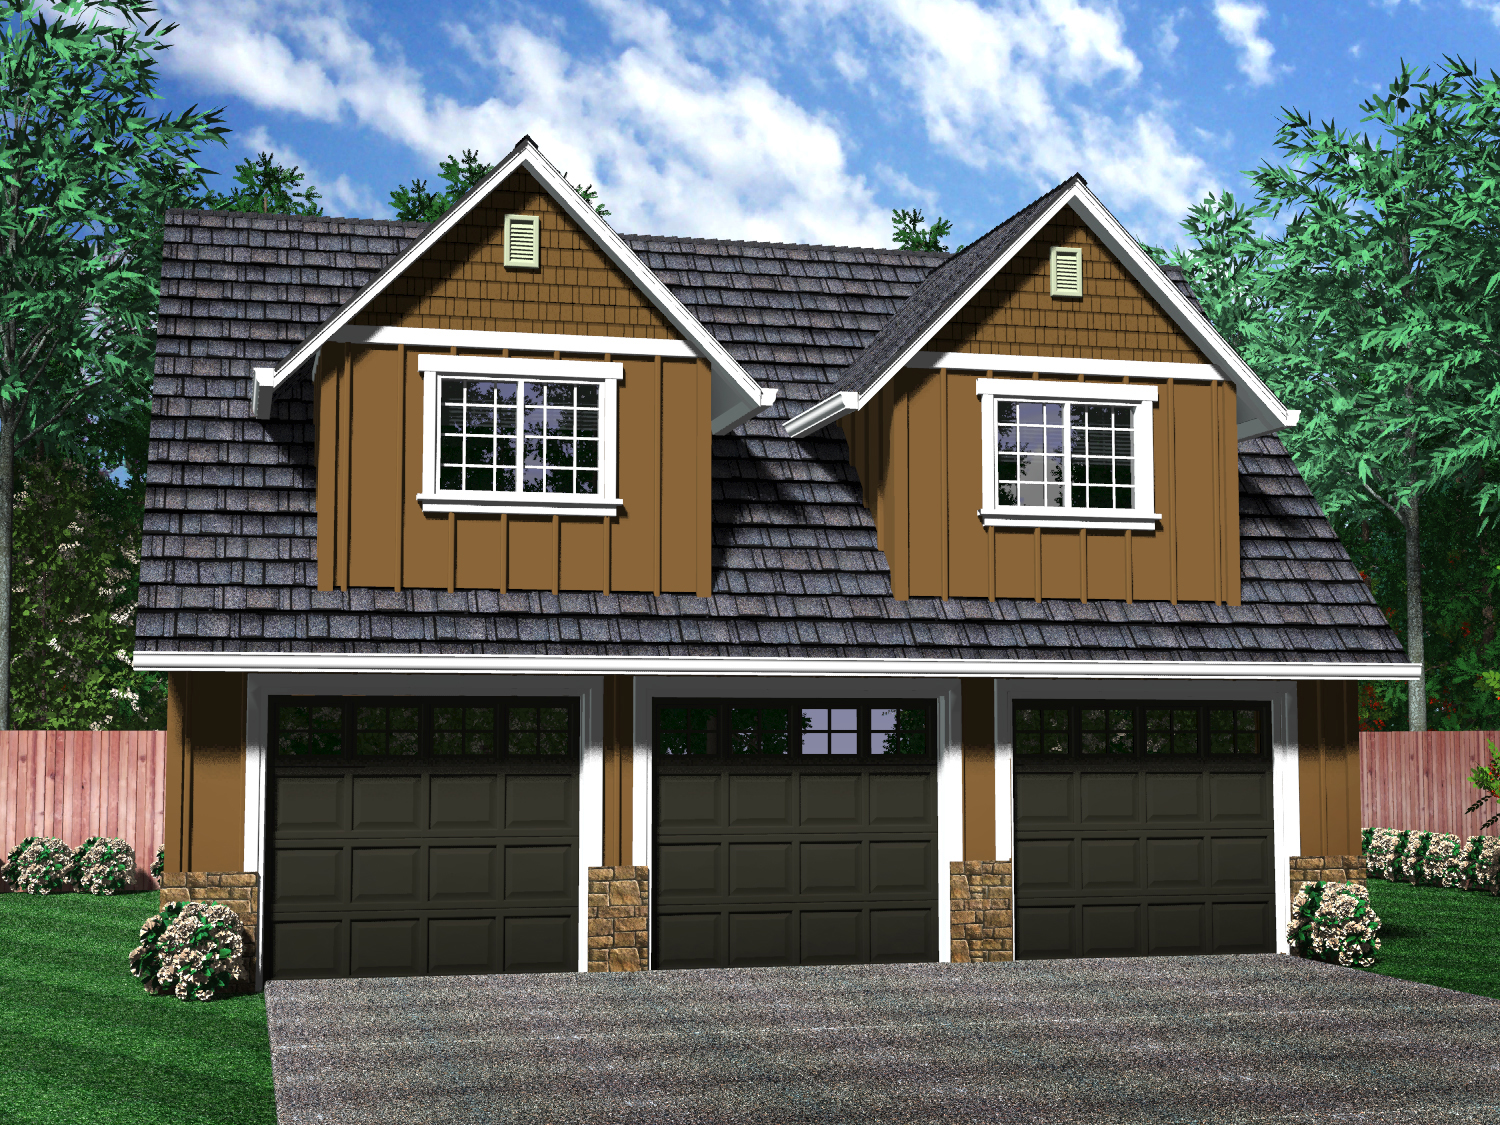 Detached garages for Garage apartment homes